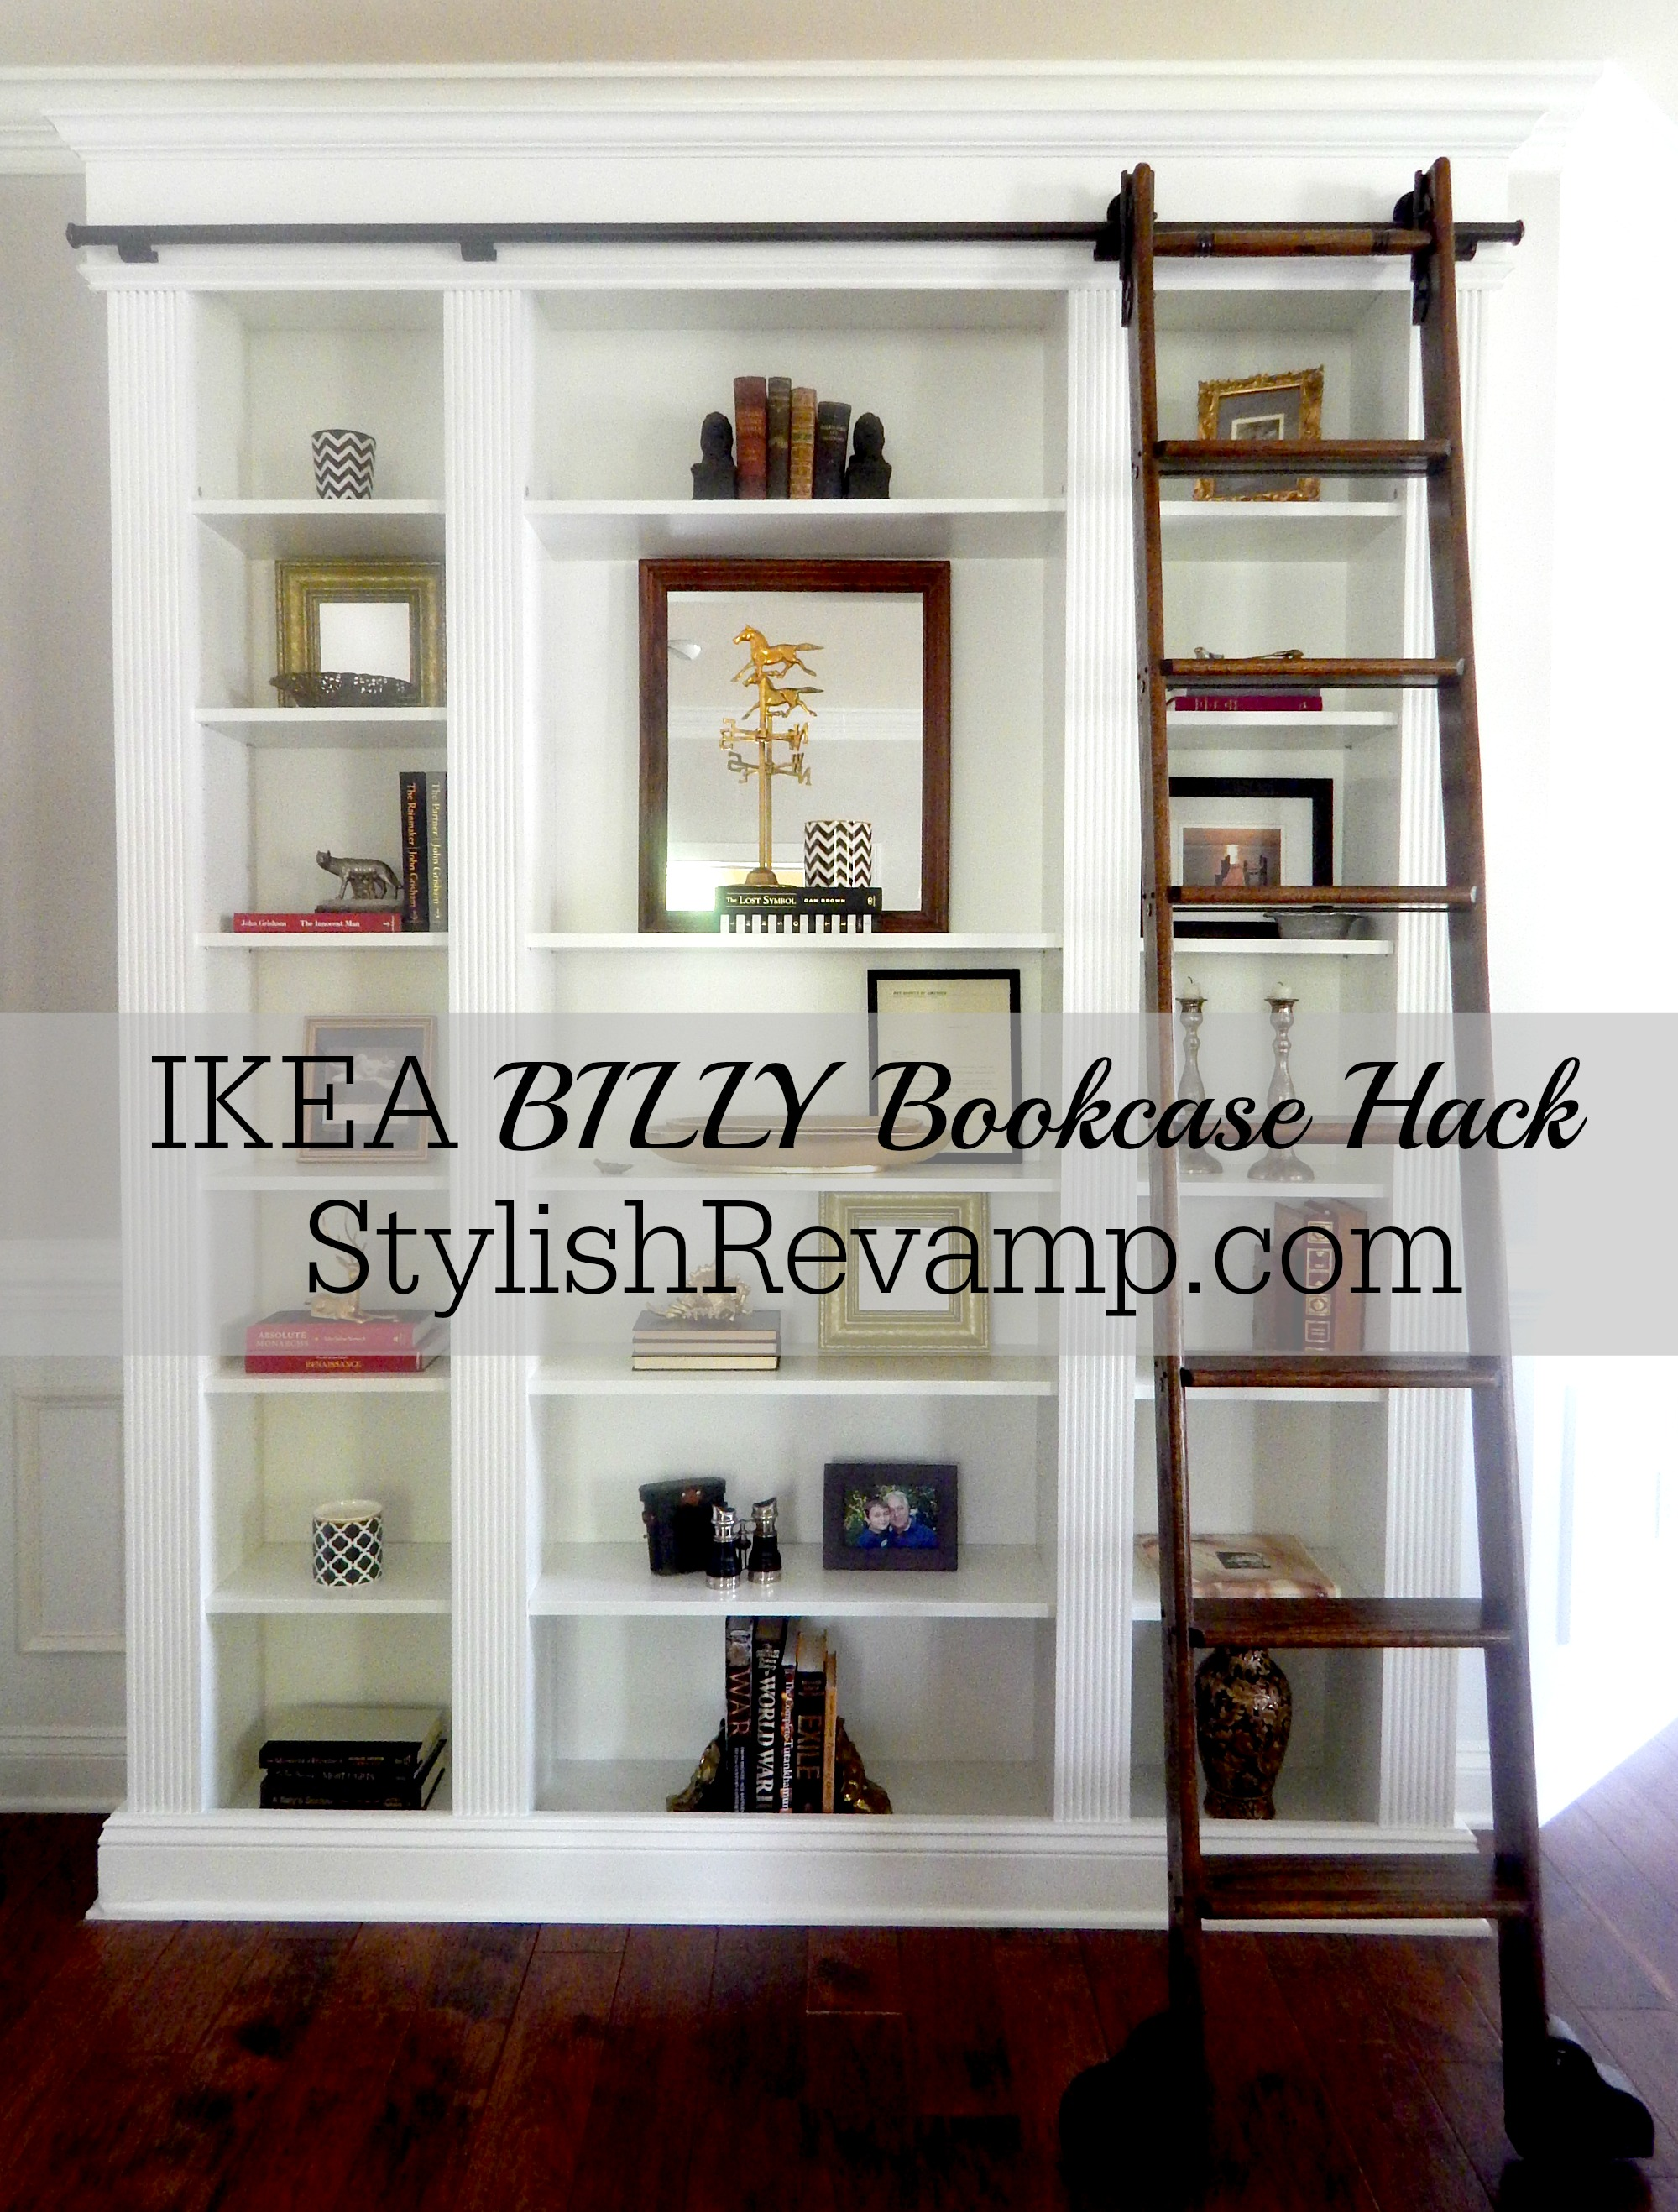 ikea billy bookcase hack stylish revamp. Black Bedroom Furniture Sets. Home Design Ideas